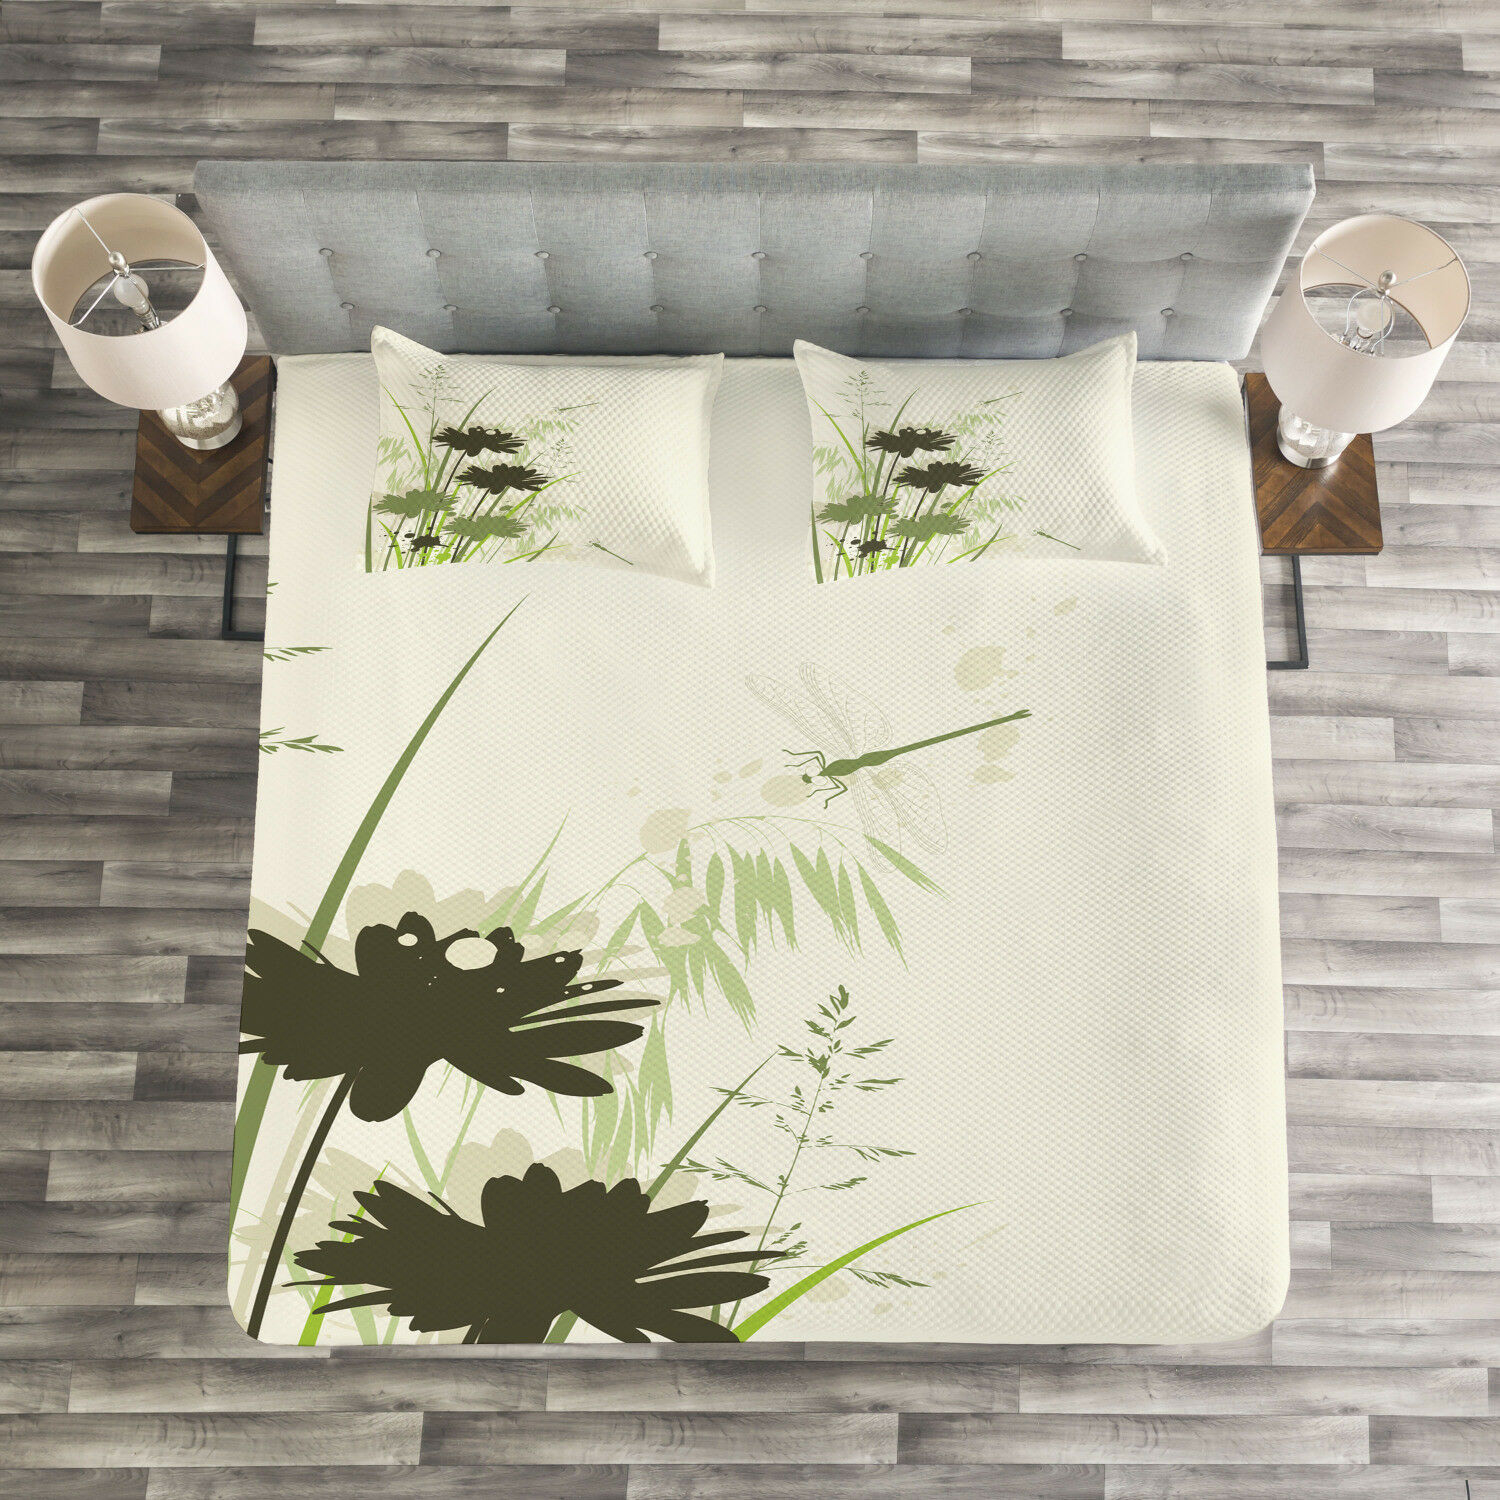 Grün Quilted Bedspread & Pillow Shams Set, Flowers Leaves Dragonfly Print